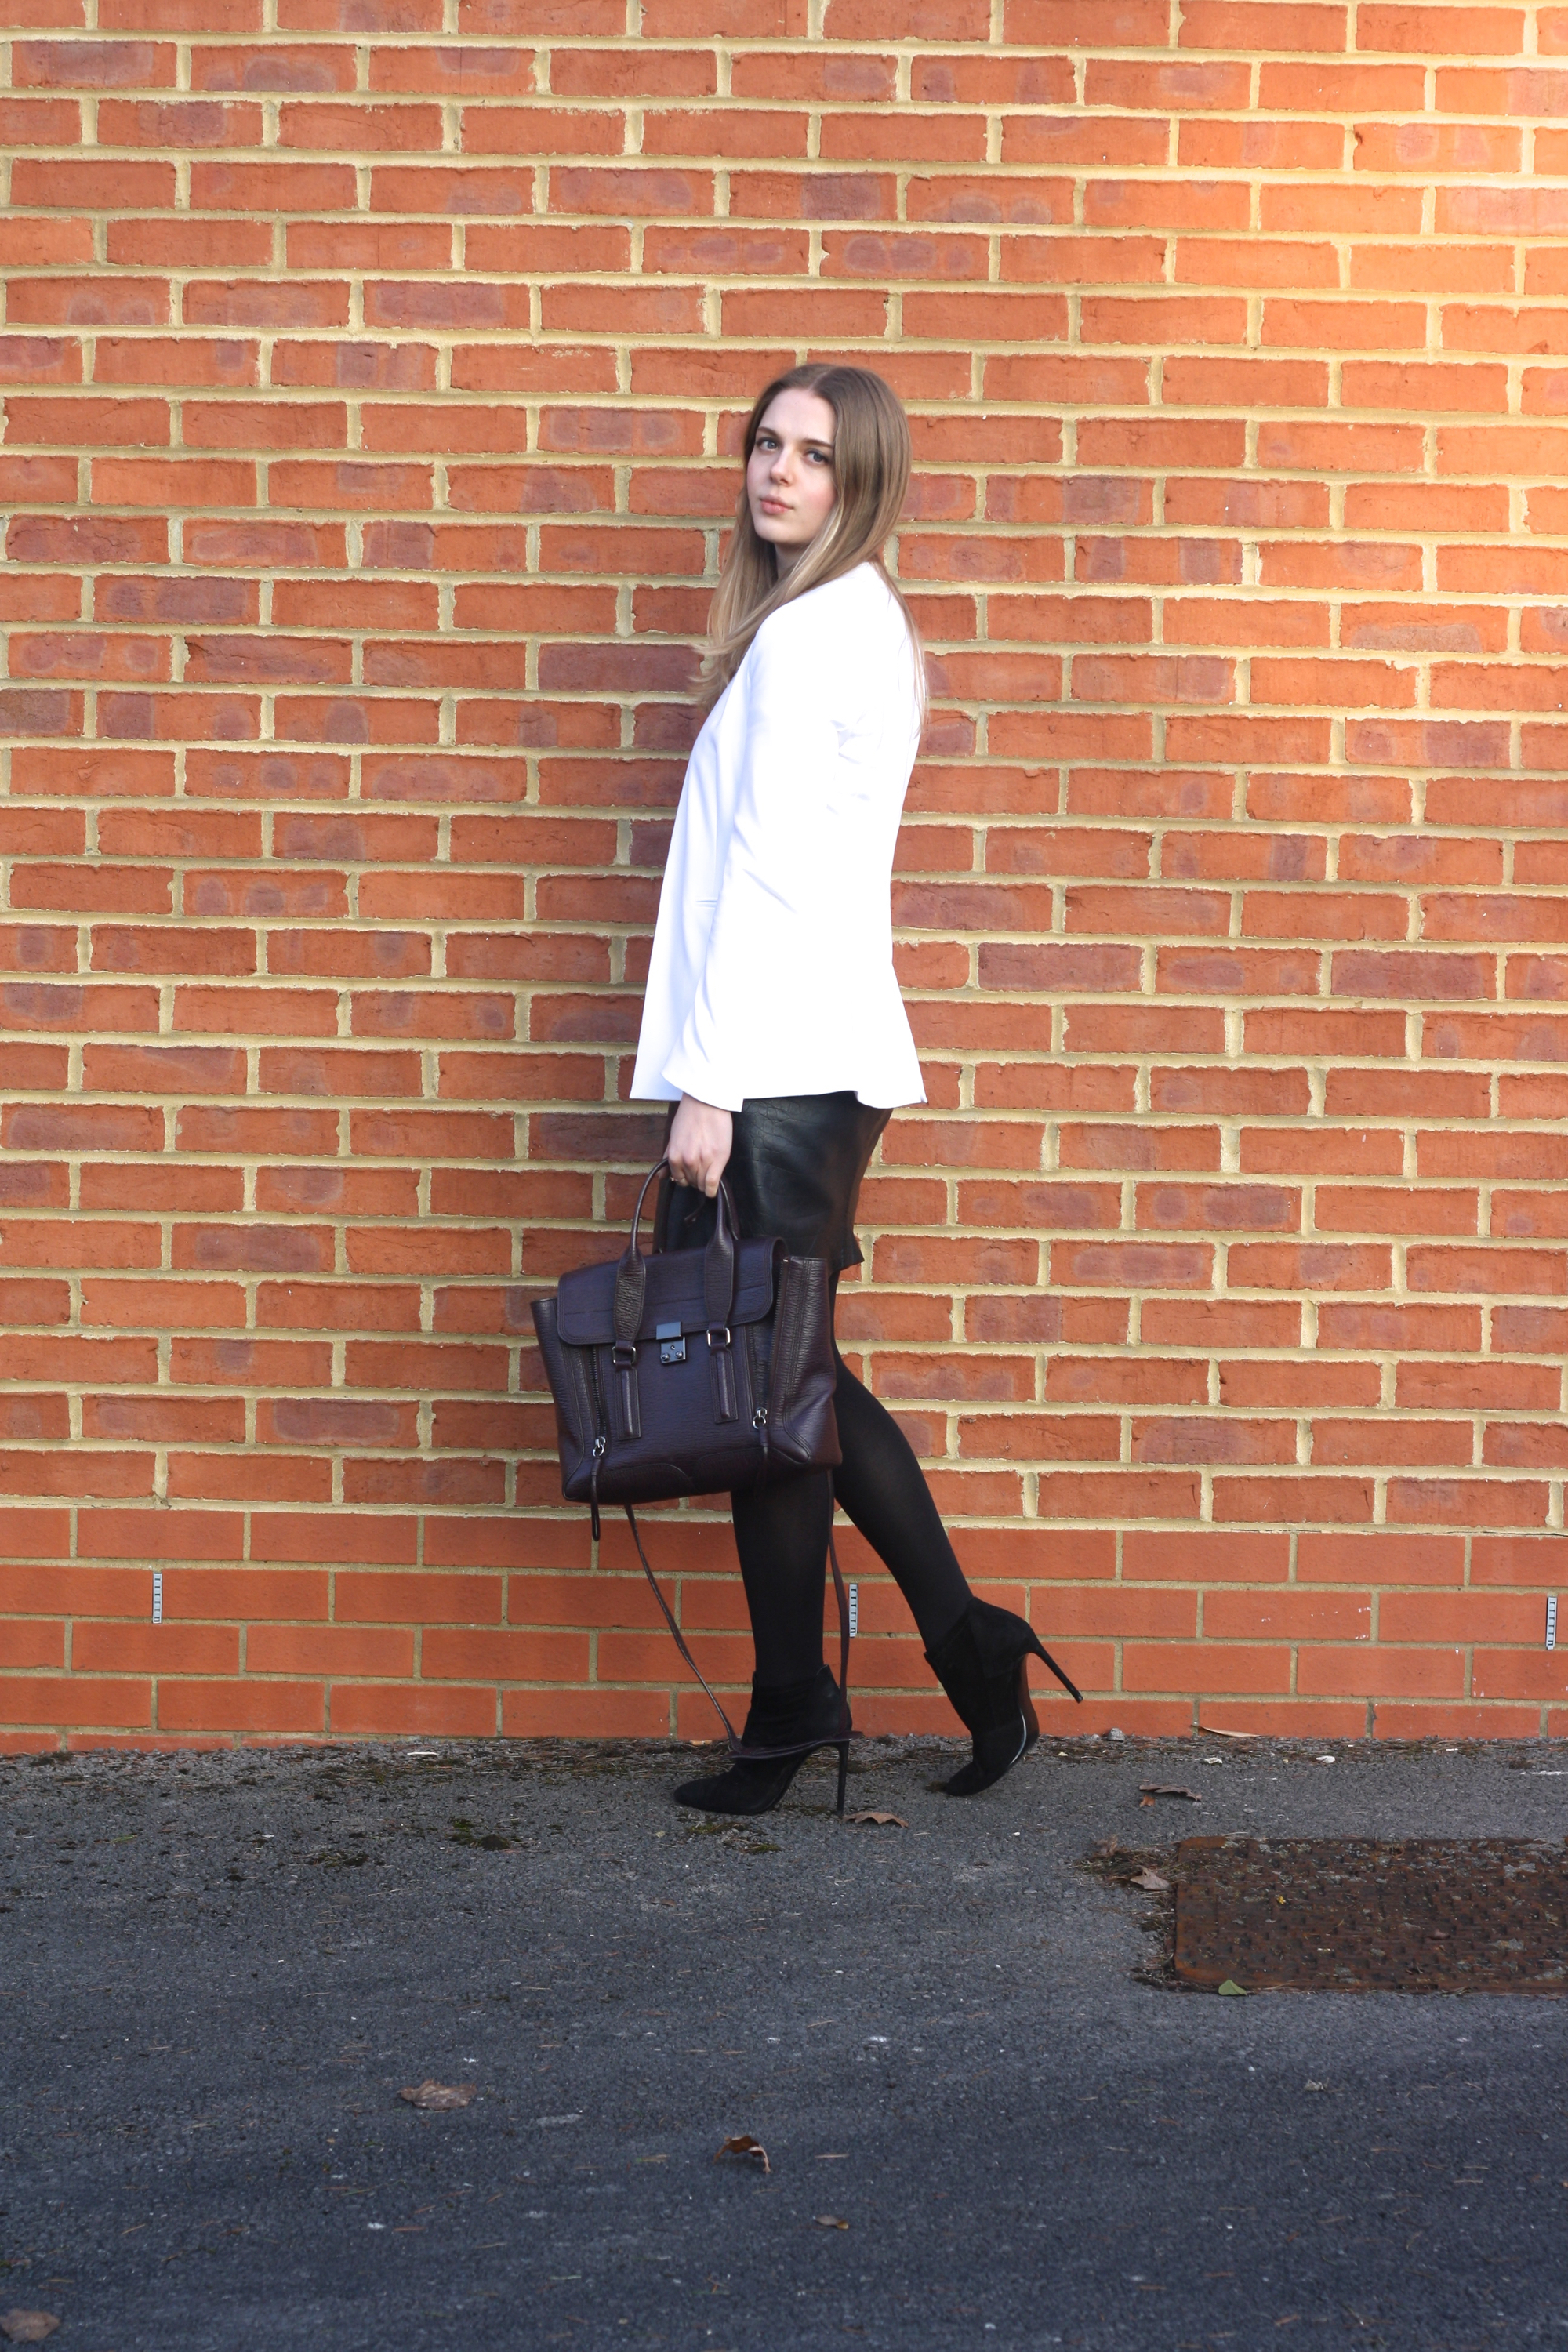 Zara white blazer, Topshop croc leather skirt and Zara black suede boots